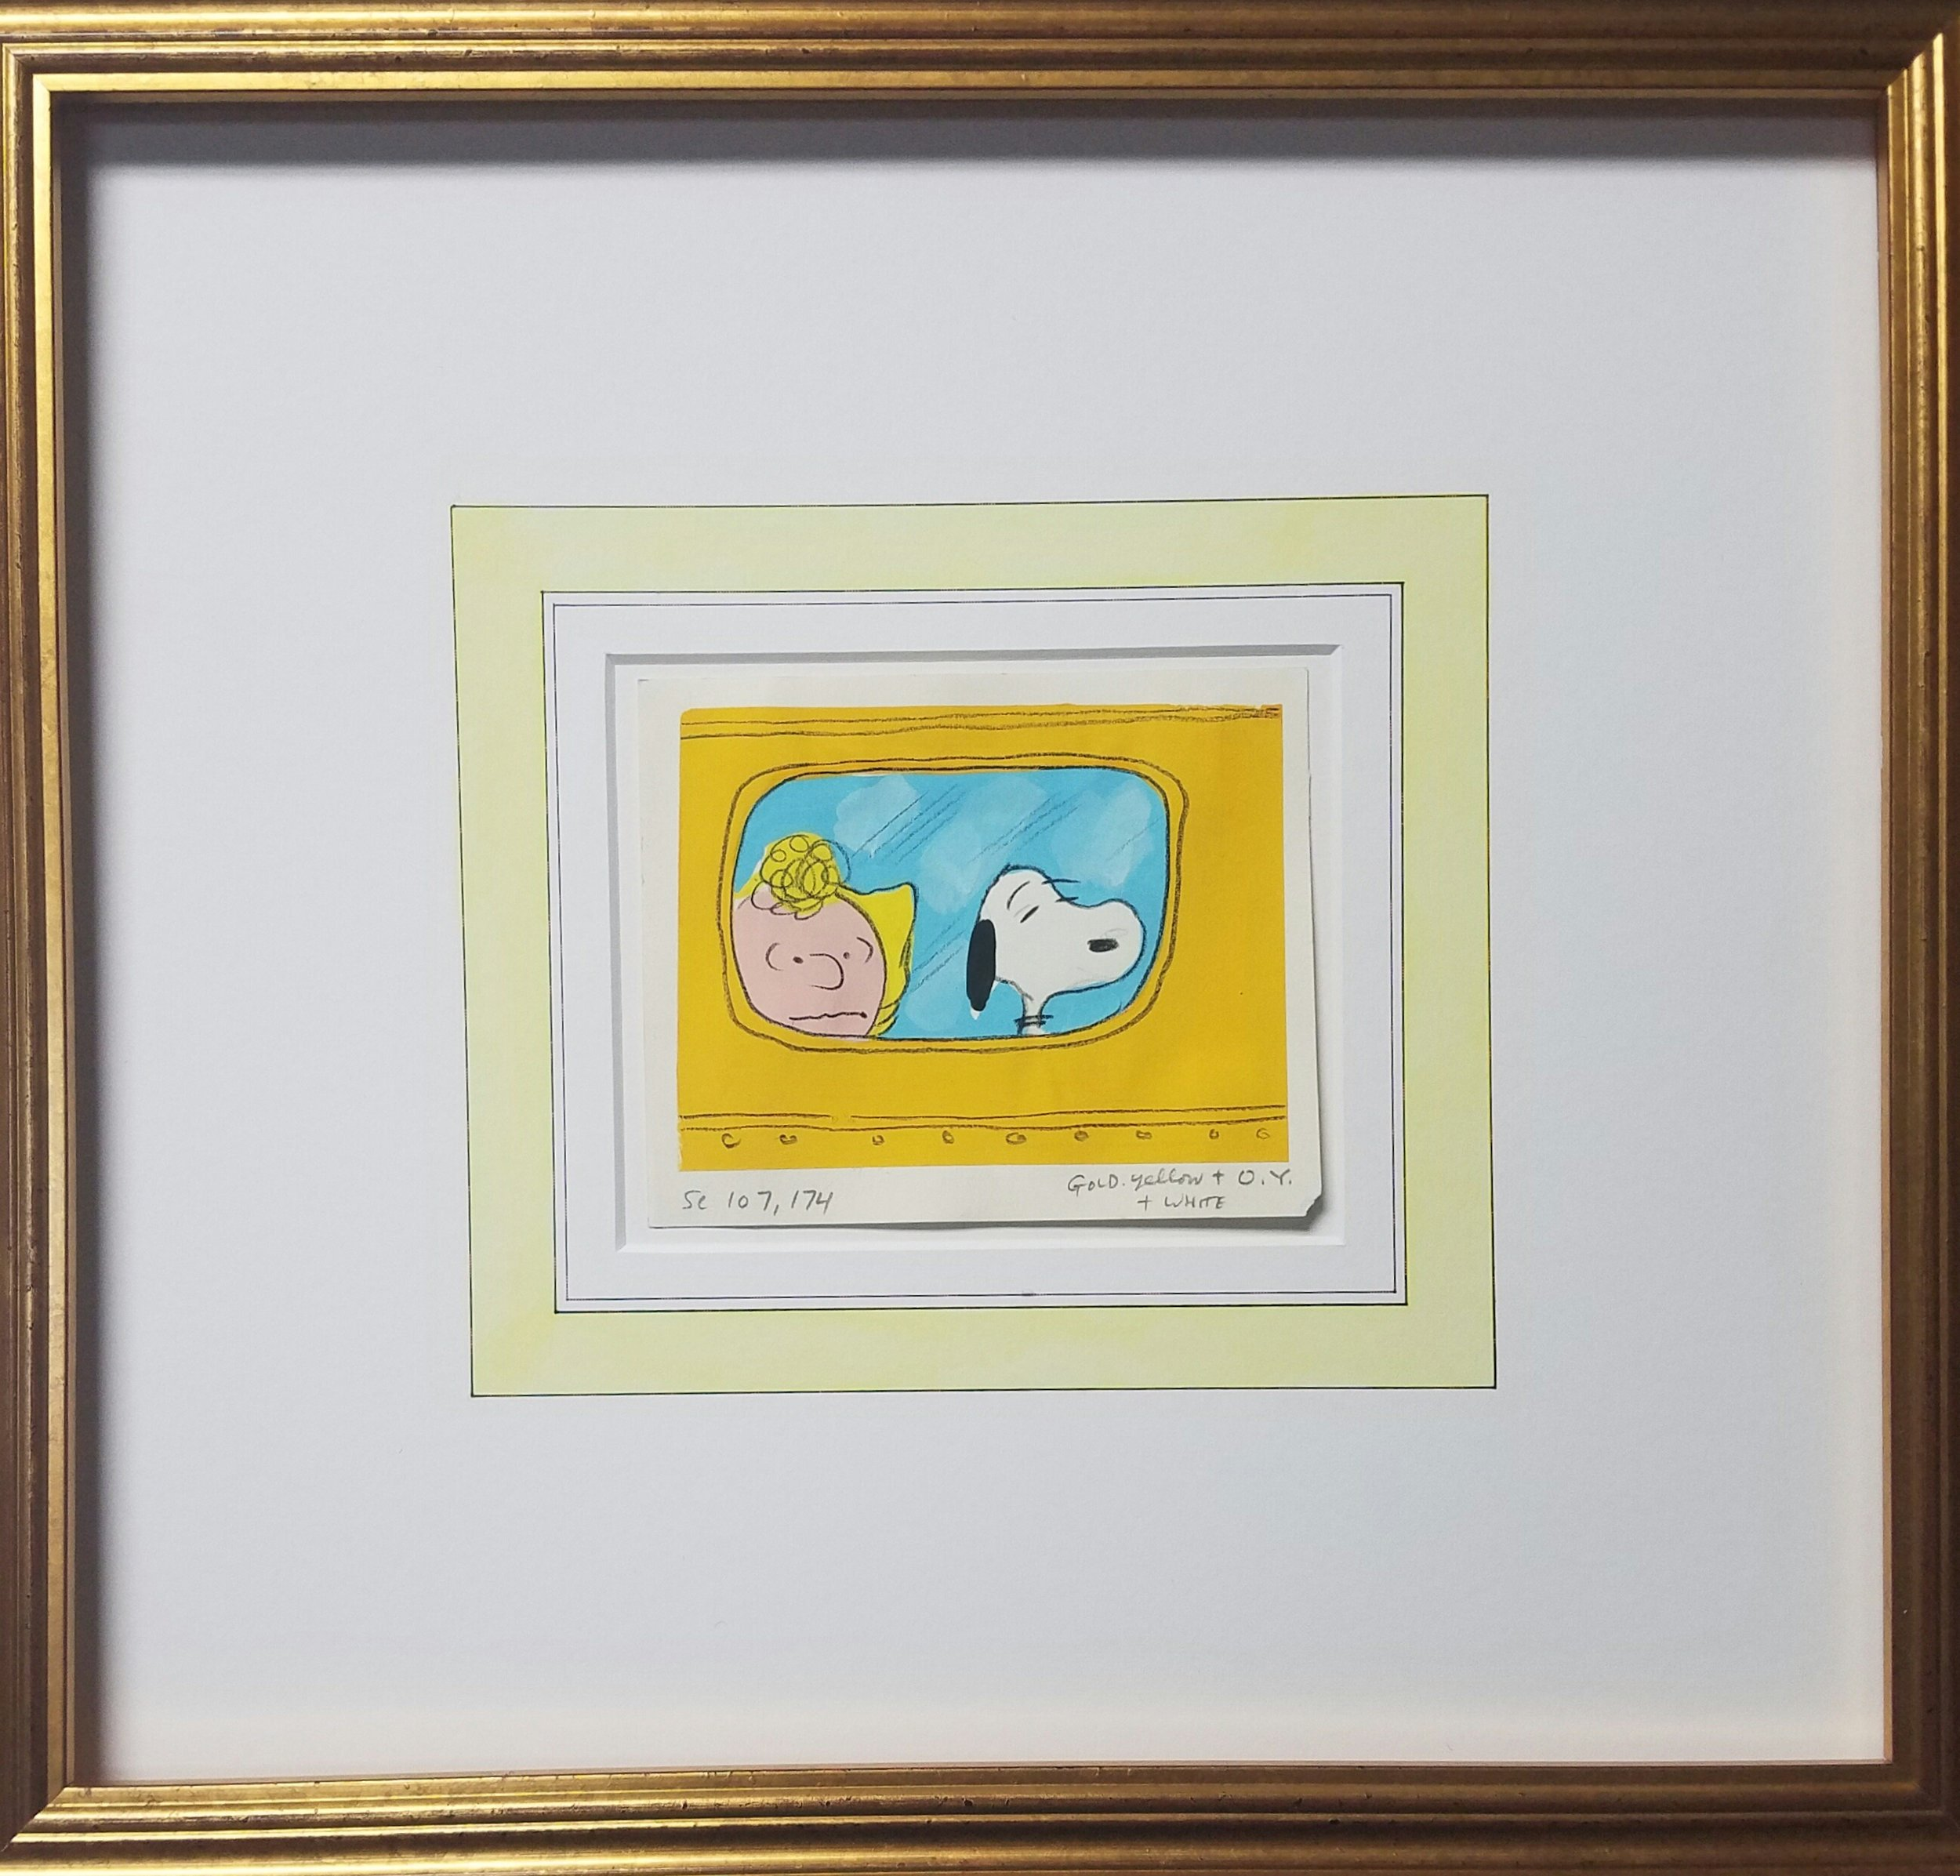 These are india ink panels, french lines, and original color stills from the Peanuts!